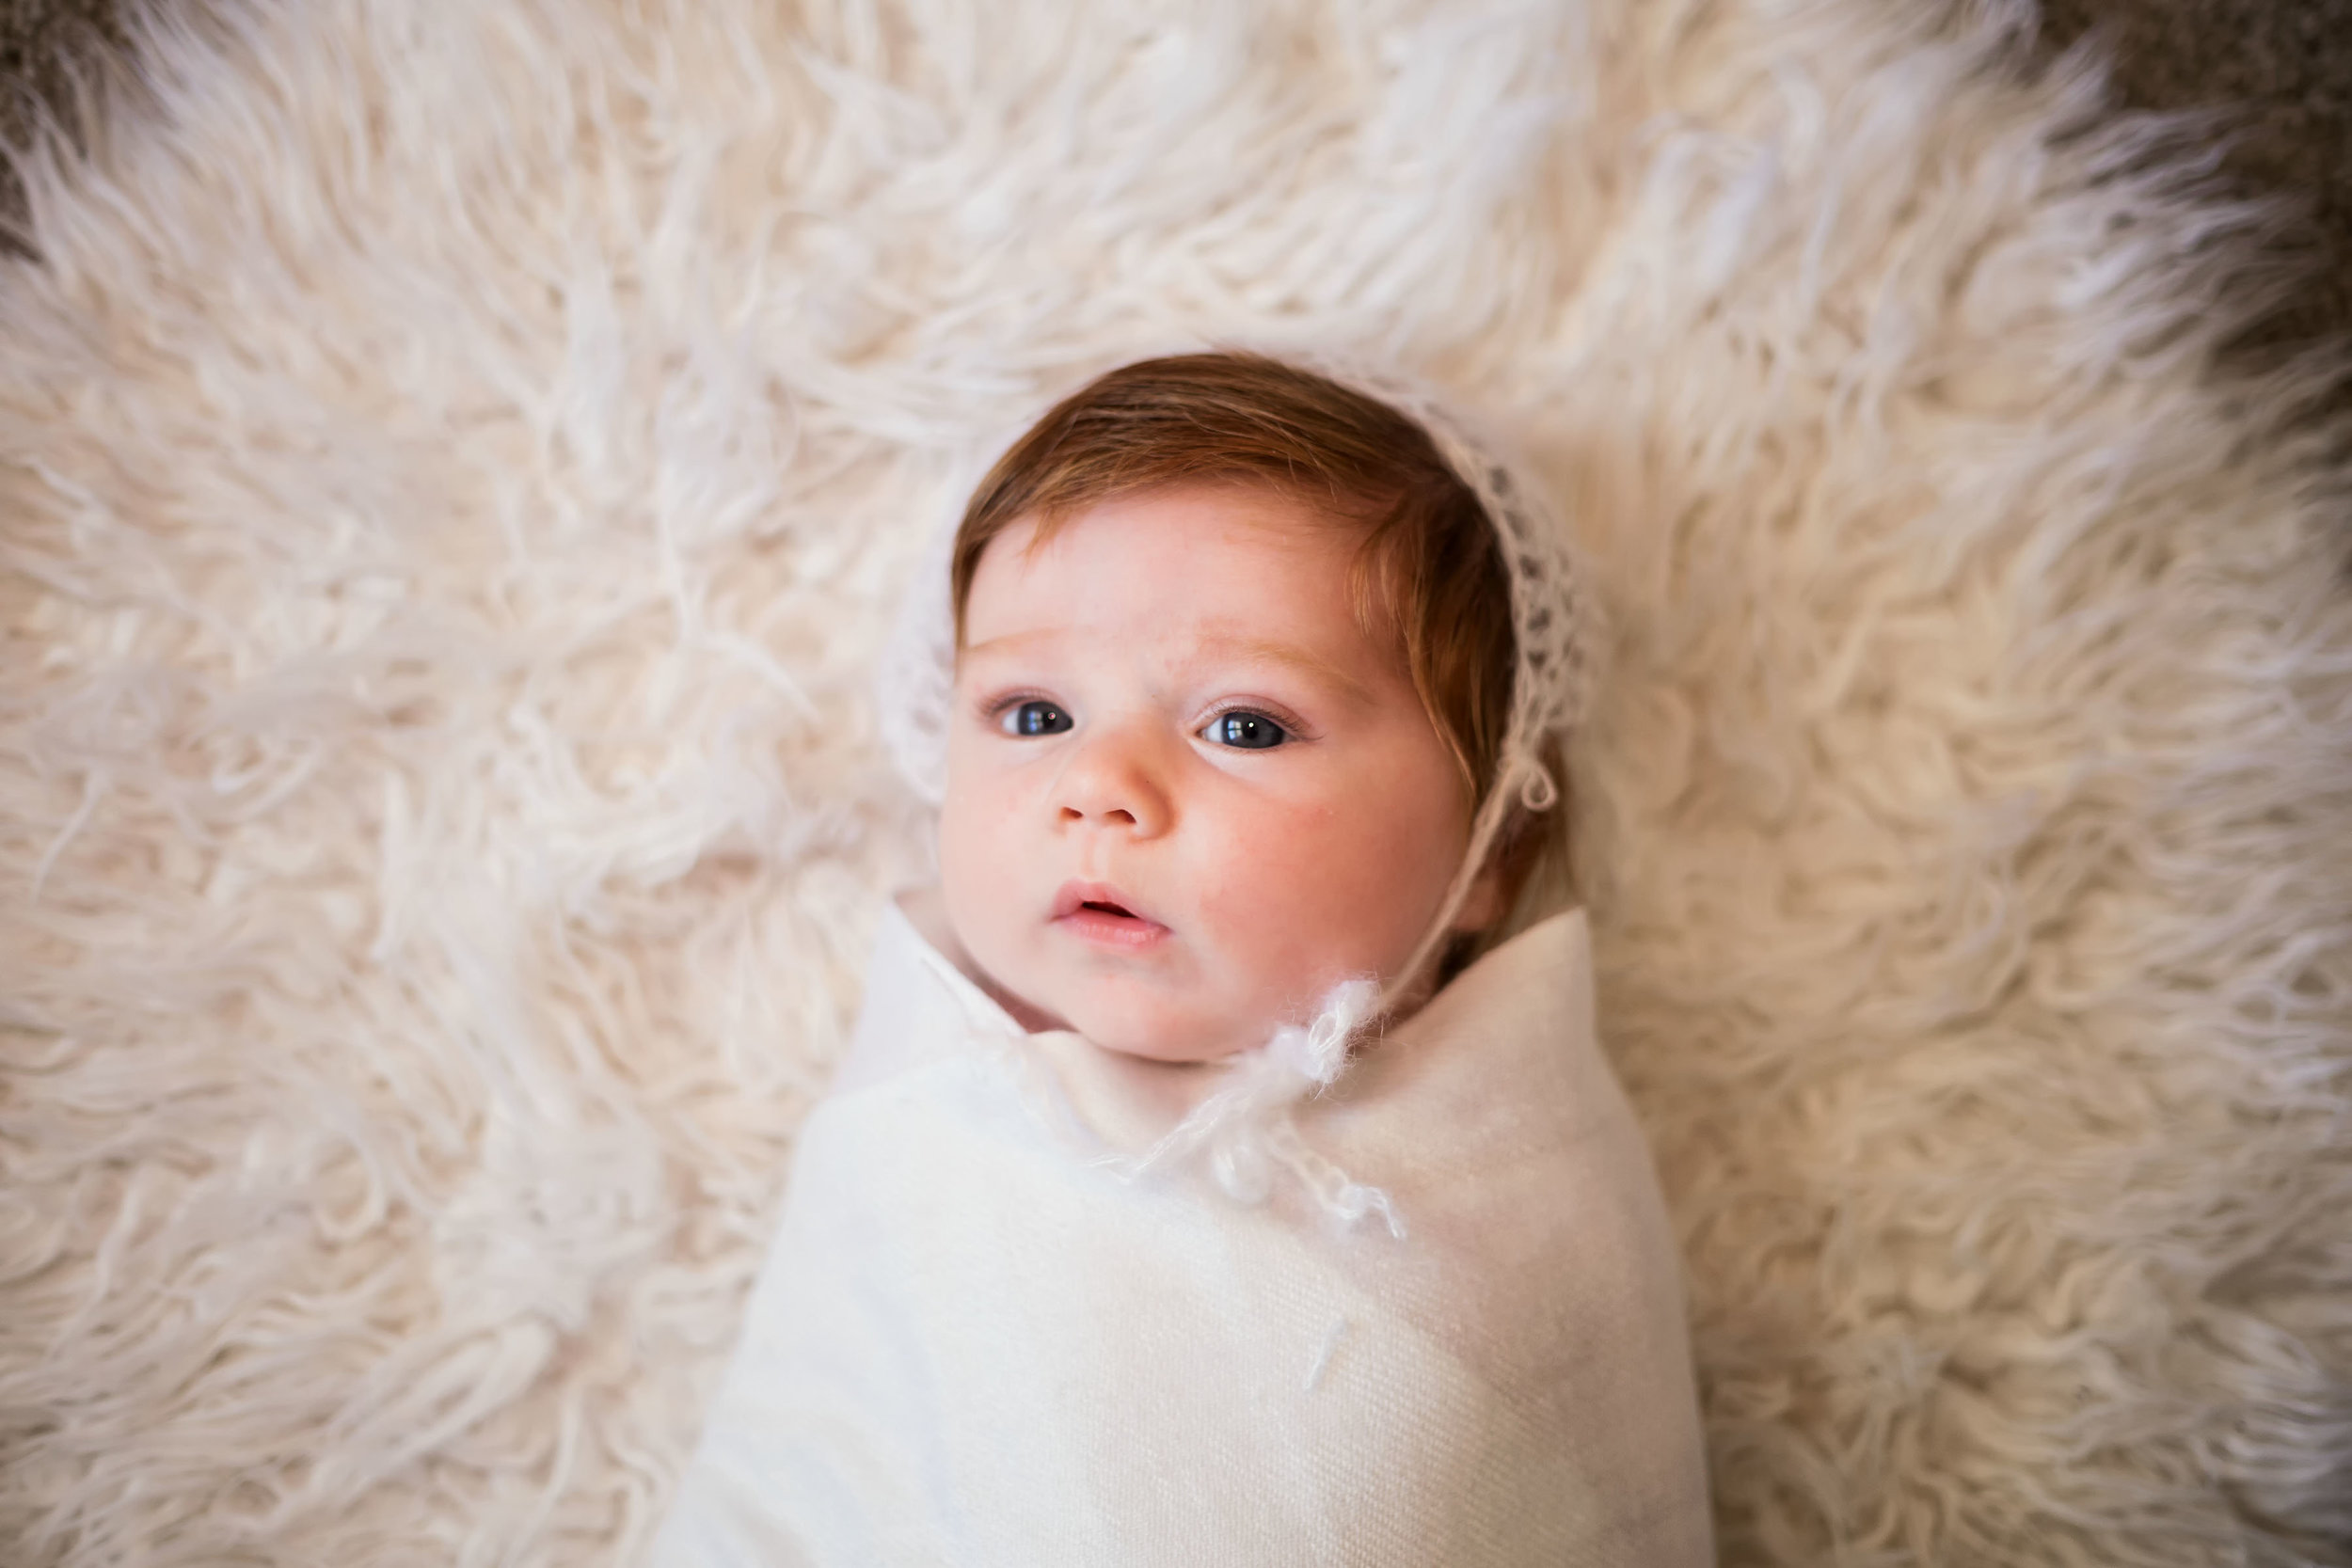 Wilmington-Newborn-Photographer-Tiffany-Abruzzo